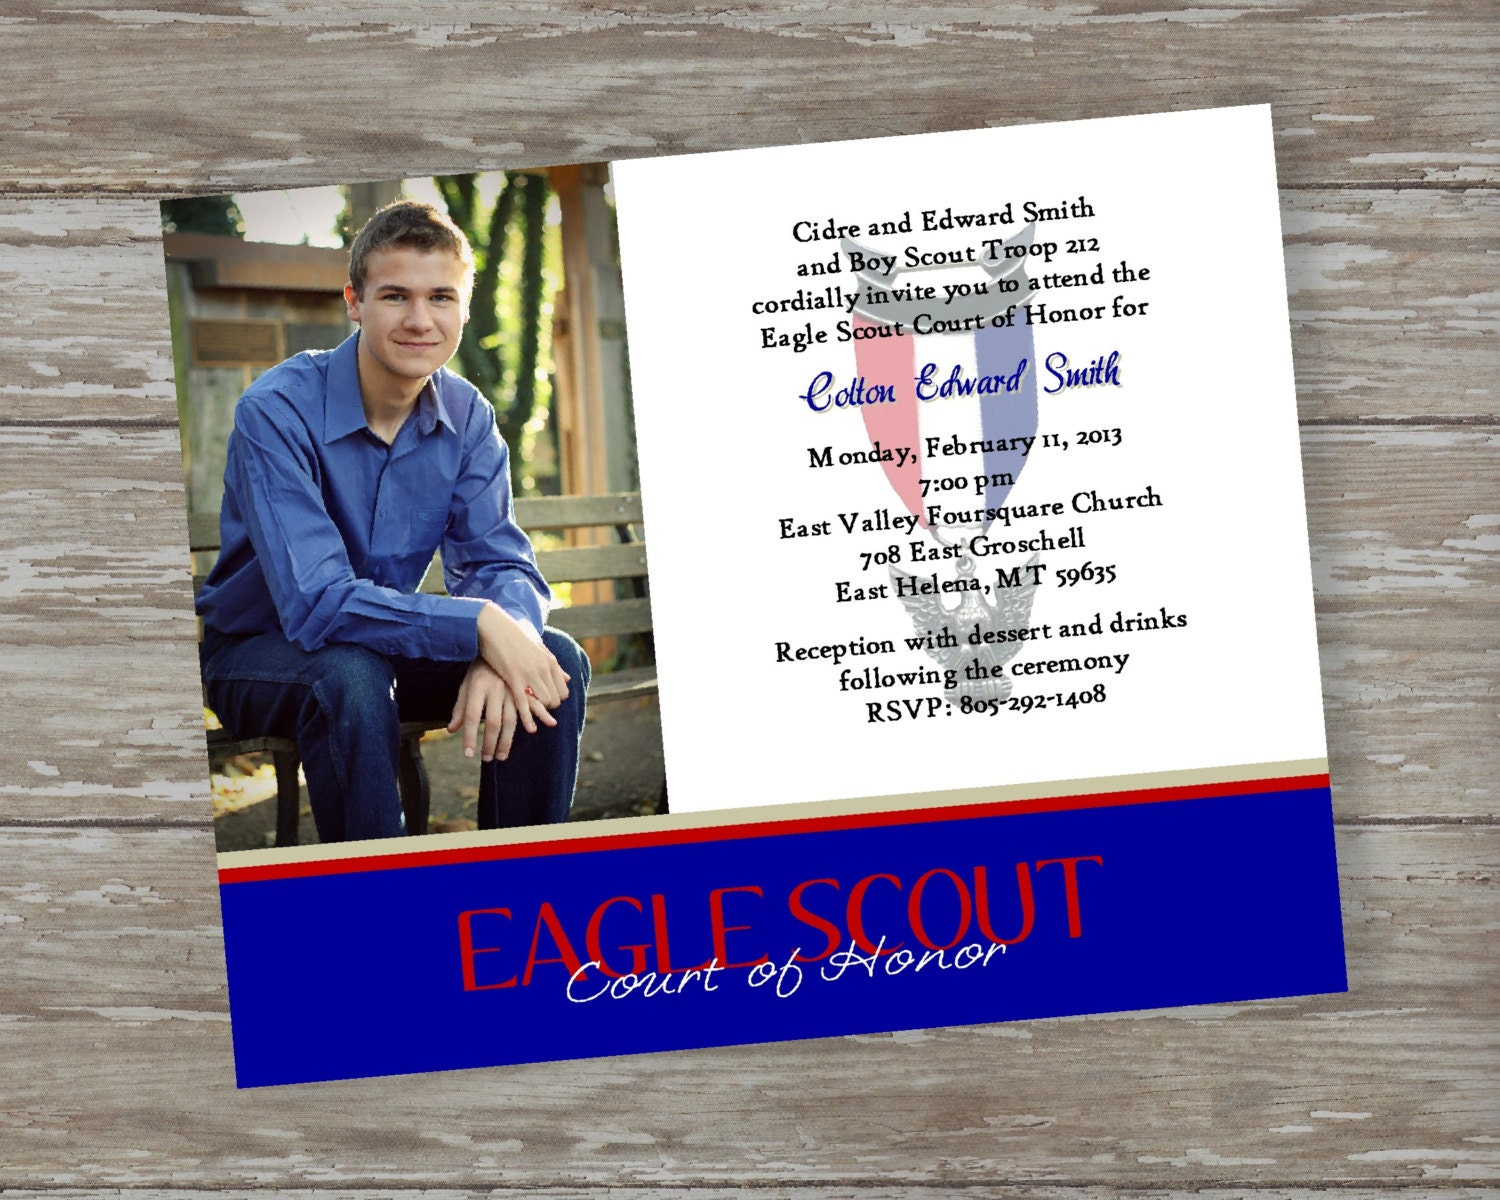 Eagle Scout Invitation-Commitment photo by ItsAllAboutTheCards